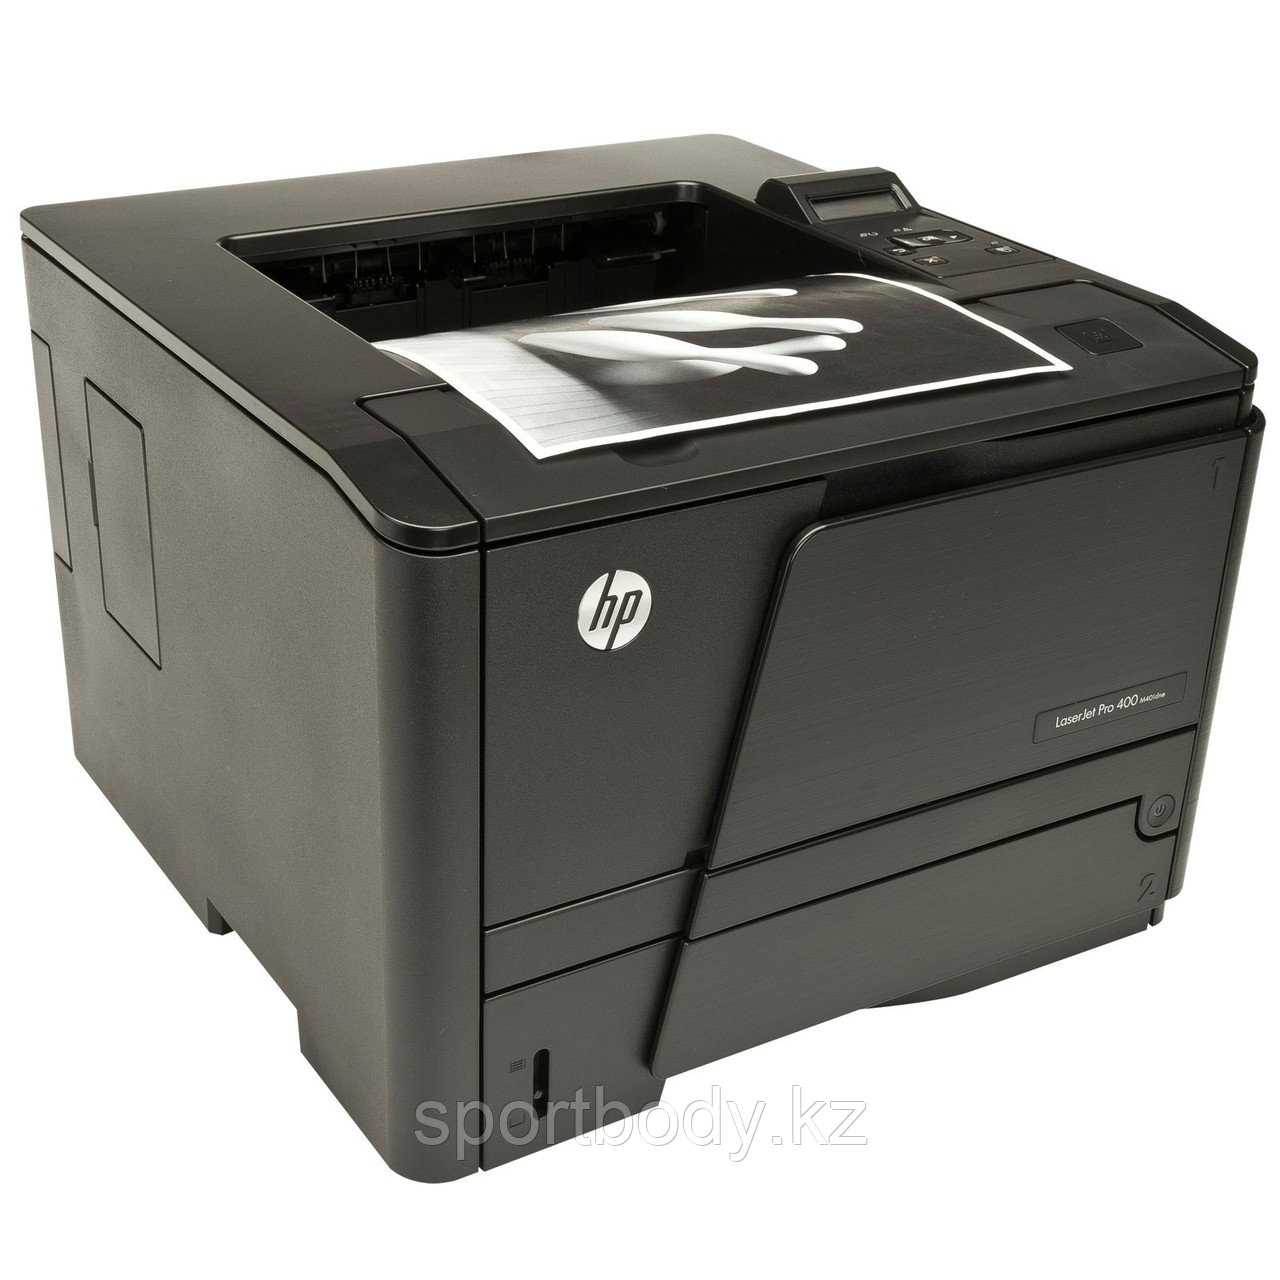 Принтер HP LaserJet Pro 400 M401dne (CF399A) (A4) 1200 dpi, 33 ppm, 256MB, 800Mhz, USB + Ethernet, ePrint, AirPrint, tray 50+250 pages, Duplex, LCD - Modern Computers в Алматы